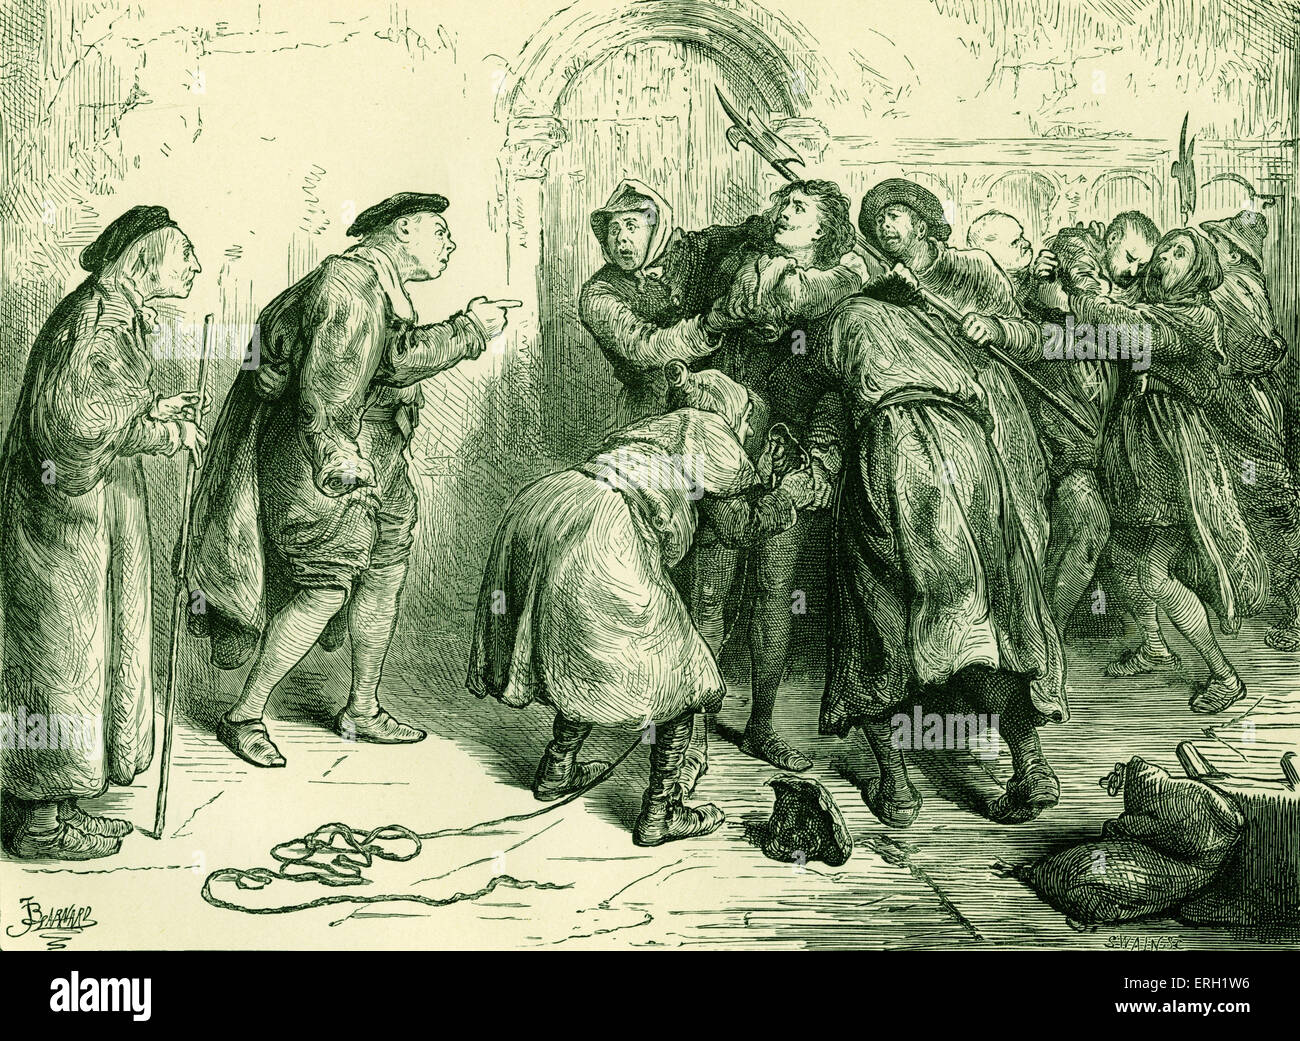 Much Ado About Nothing (Act IV Scene 2), play by William Shakespeare. Dogberry and the Watch. 'Dogberry: Dost - Stock Image